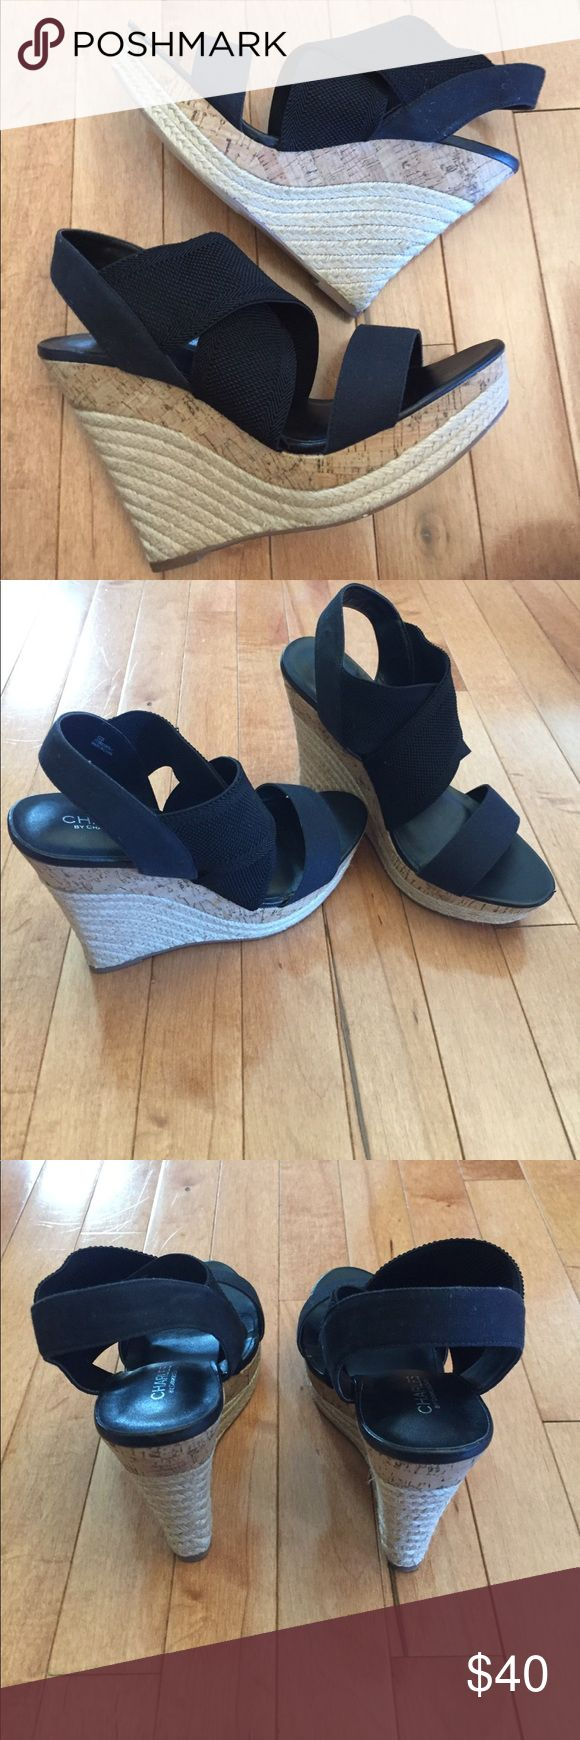 NWT Charles by Charles David Sz 9.5 Funky Sandals New! Charles David Size 9.5 Wedge Sandal. Charles David Shoes Wedges